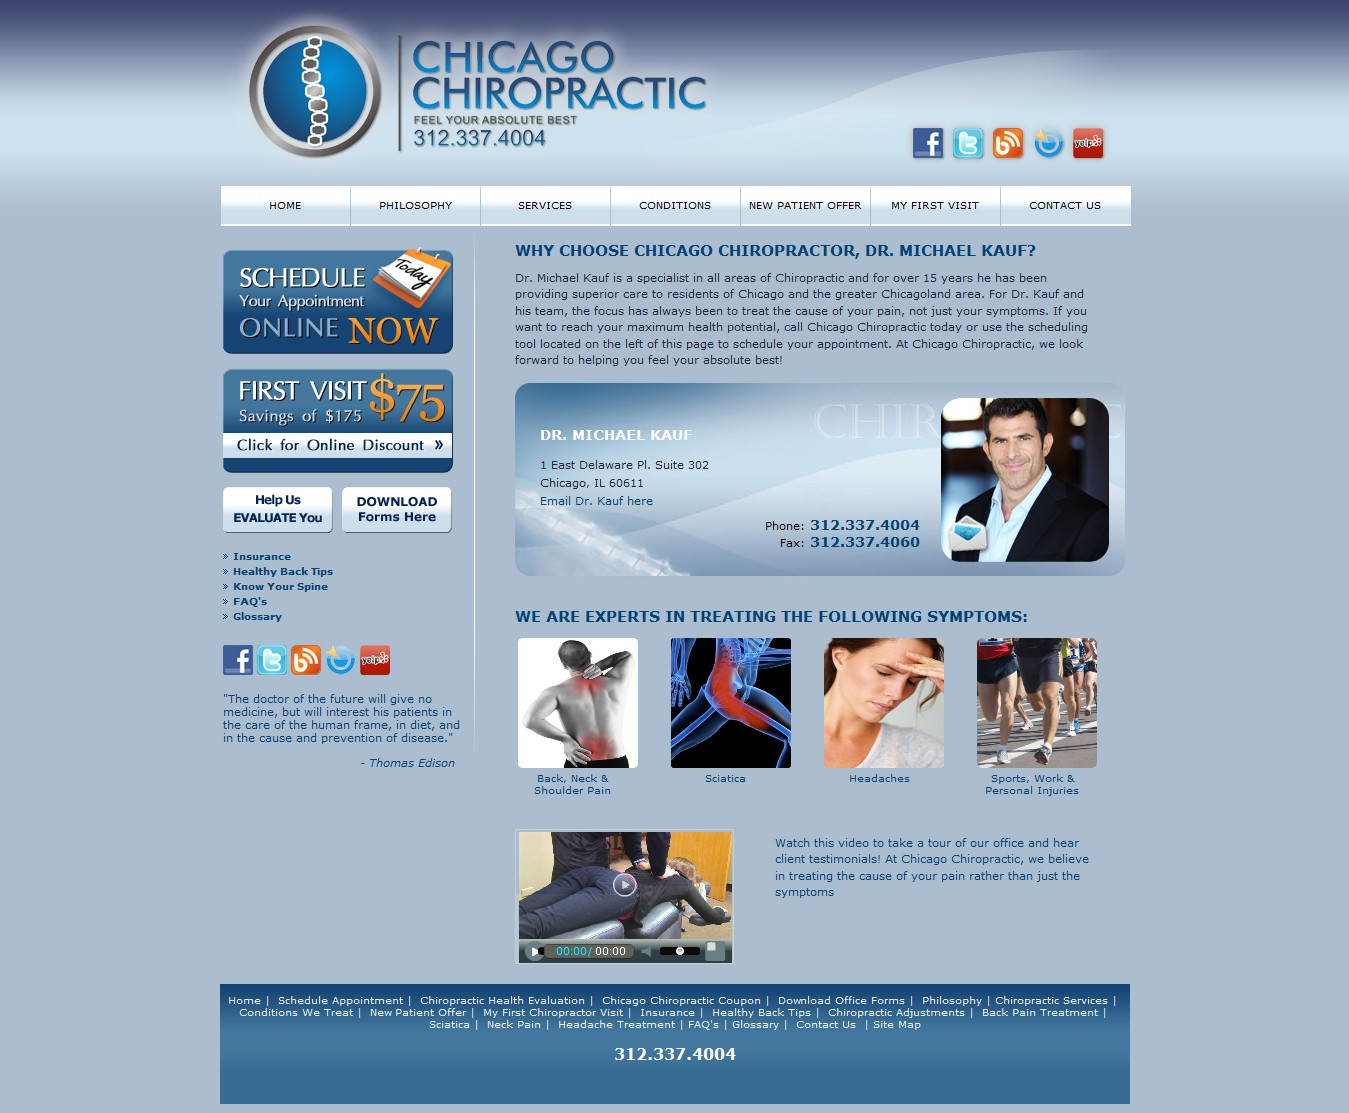 Help Chicago Chiropractic with a new banner ad